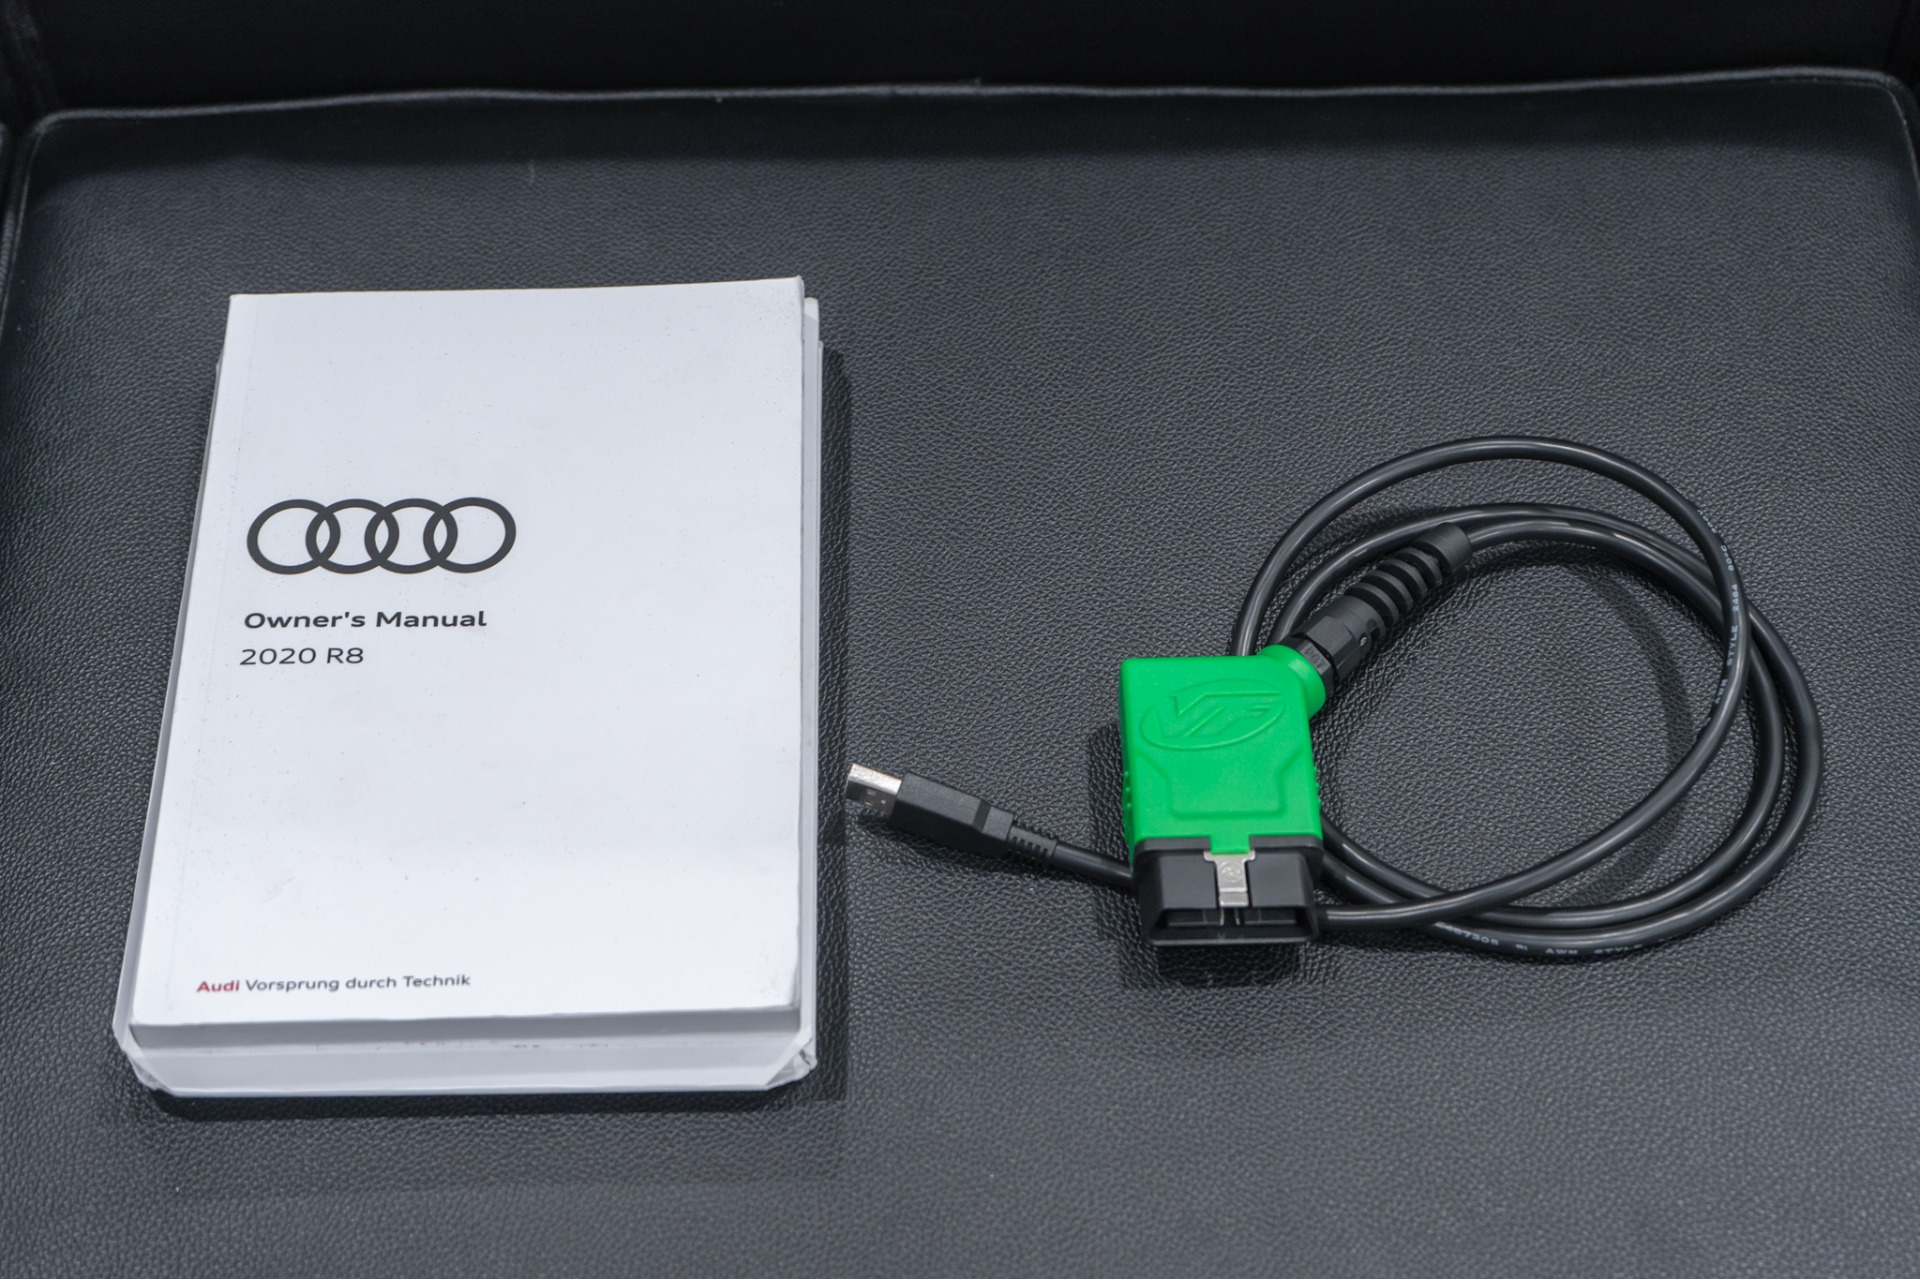 Used-2020-Audi-R8-52-quattro-V10-performance-VF-SUPERCHARGED-HREs-KW-COILOVERS-70k-UPGRAD